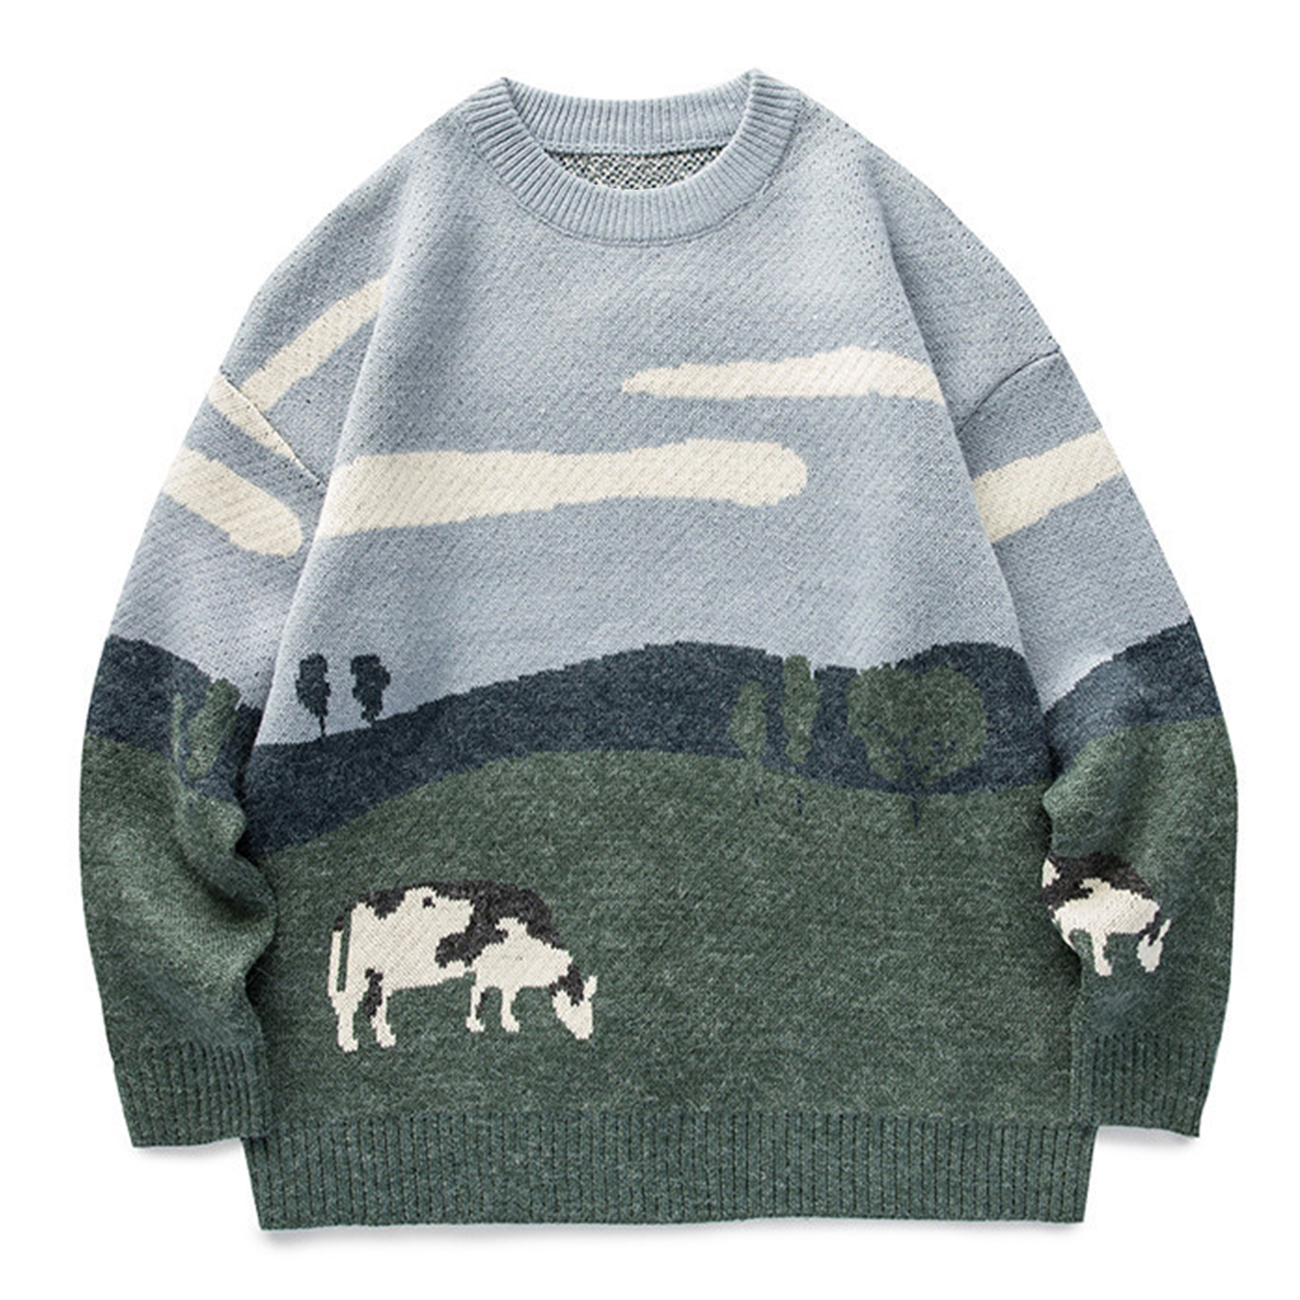 2021 Men Cow Vintage Winter Sweater Pullover O-Neck Korean Knitted Sweater Women Casual Harajuku Couple Knit Streetwear Oversize